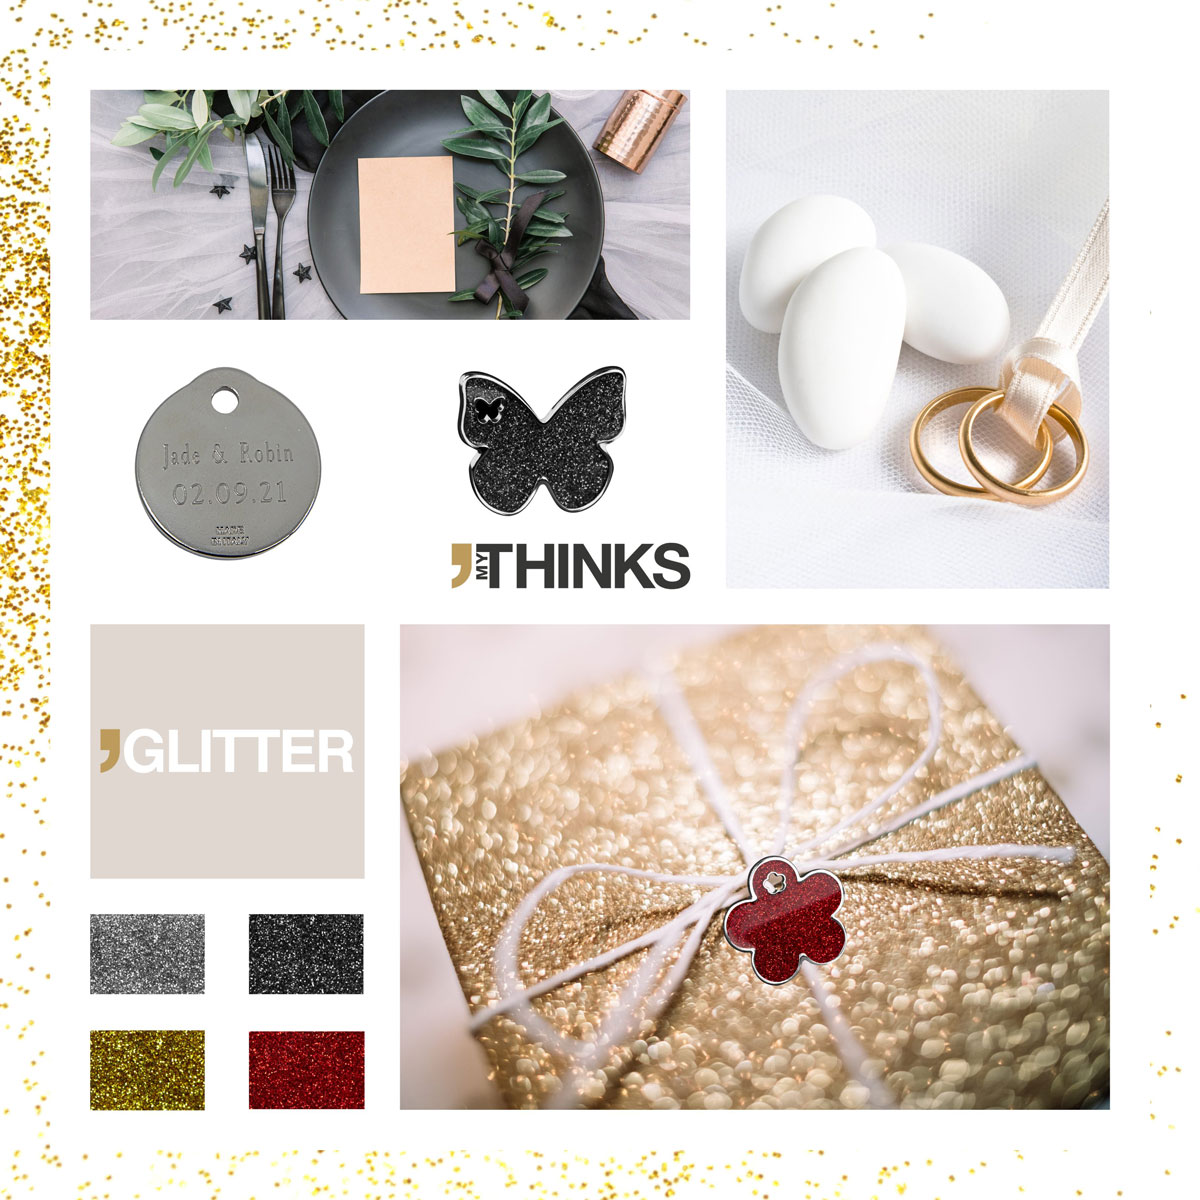 Enamelled chromed and golden Glitter gifts collection color chart with round chromed medal personalized with diamond engraving and butterfly black glitter charm